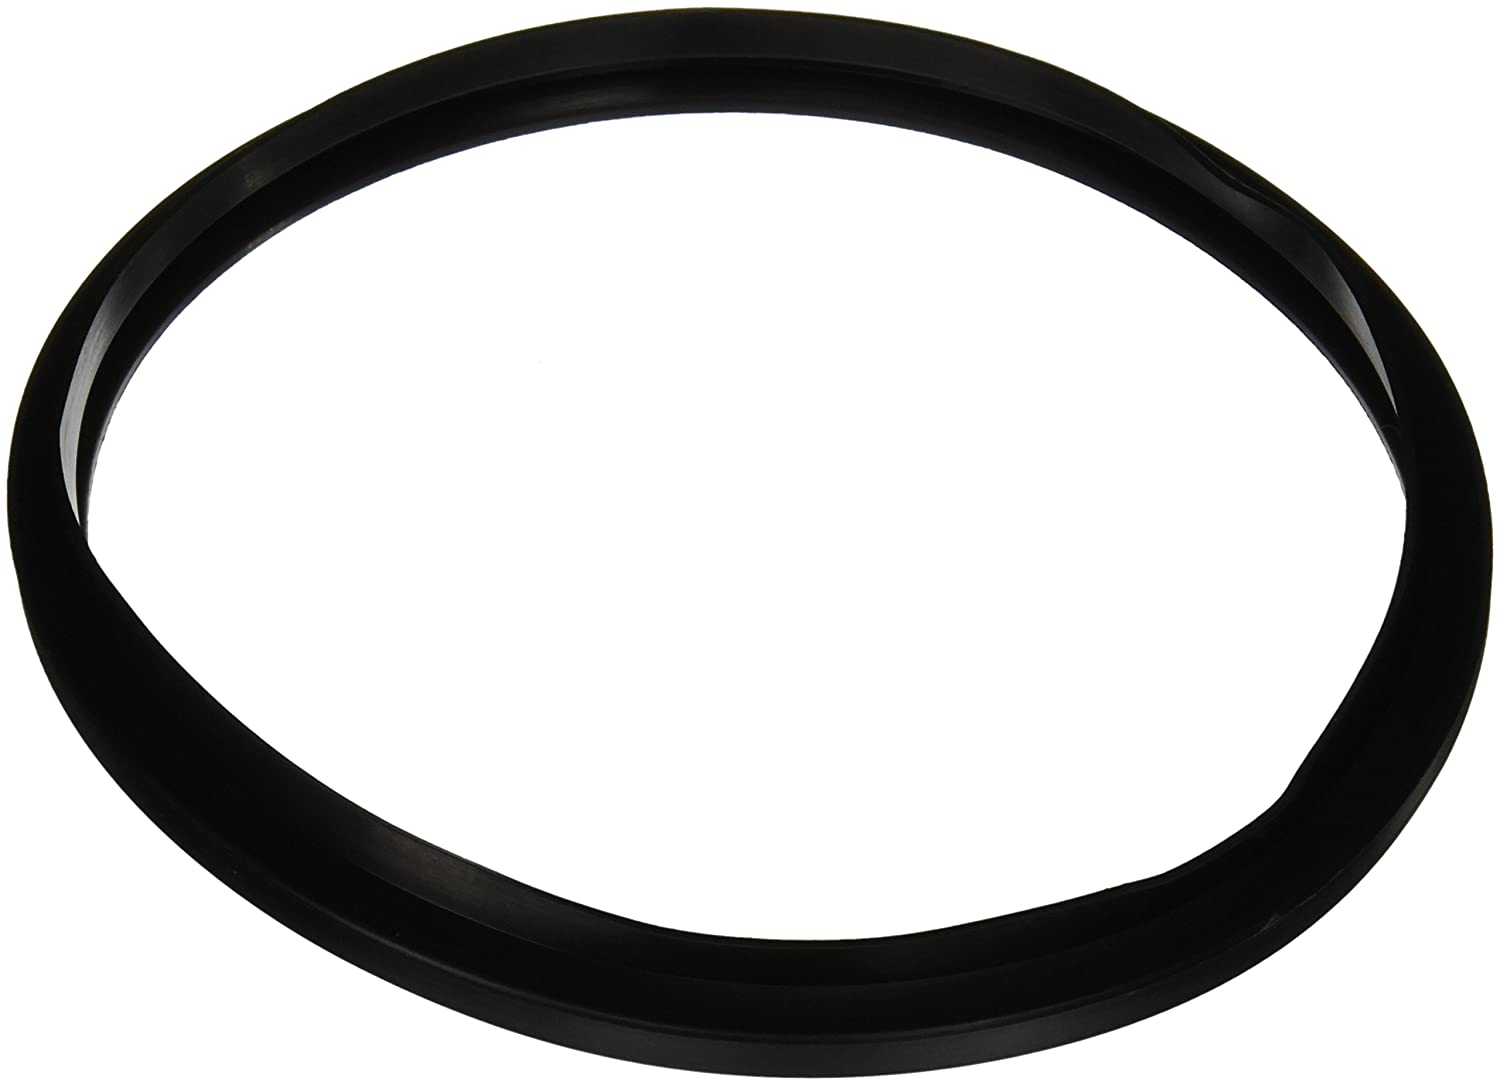 Hayward CX250F Filter Head Gasket Replacement Star-Clear Cartridge Filter